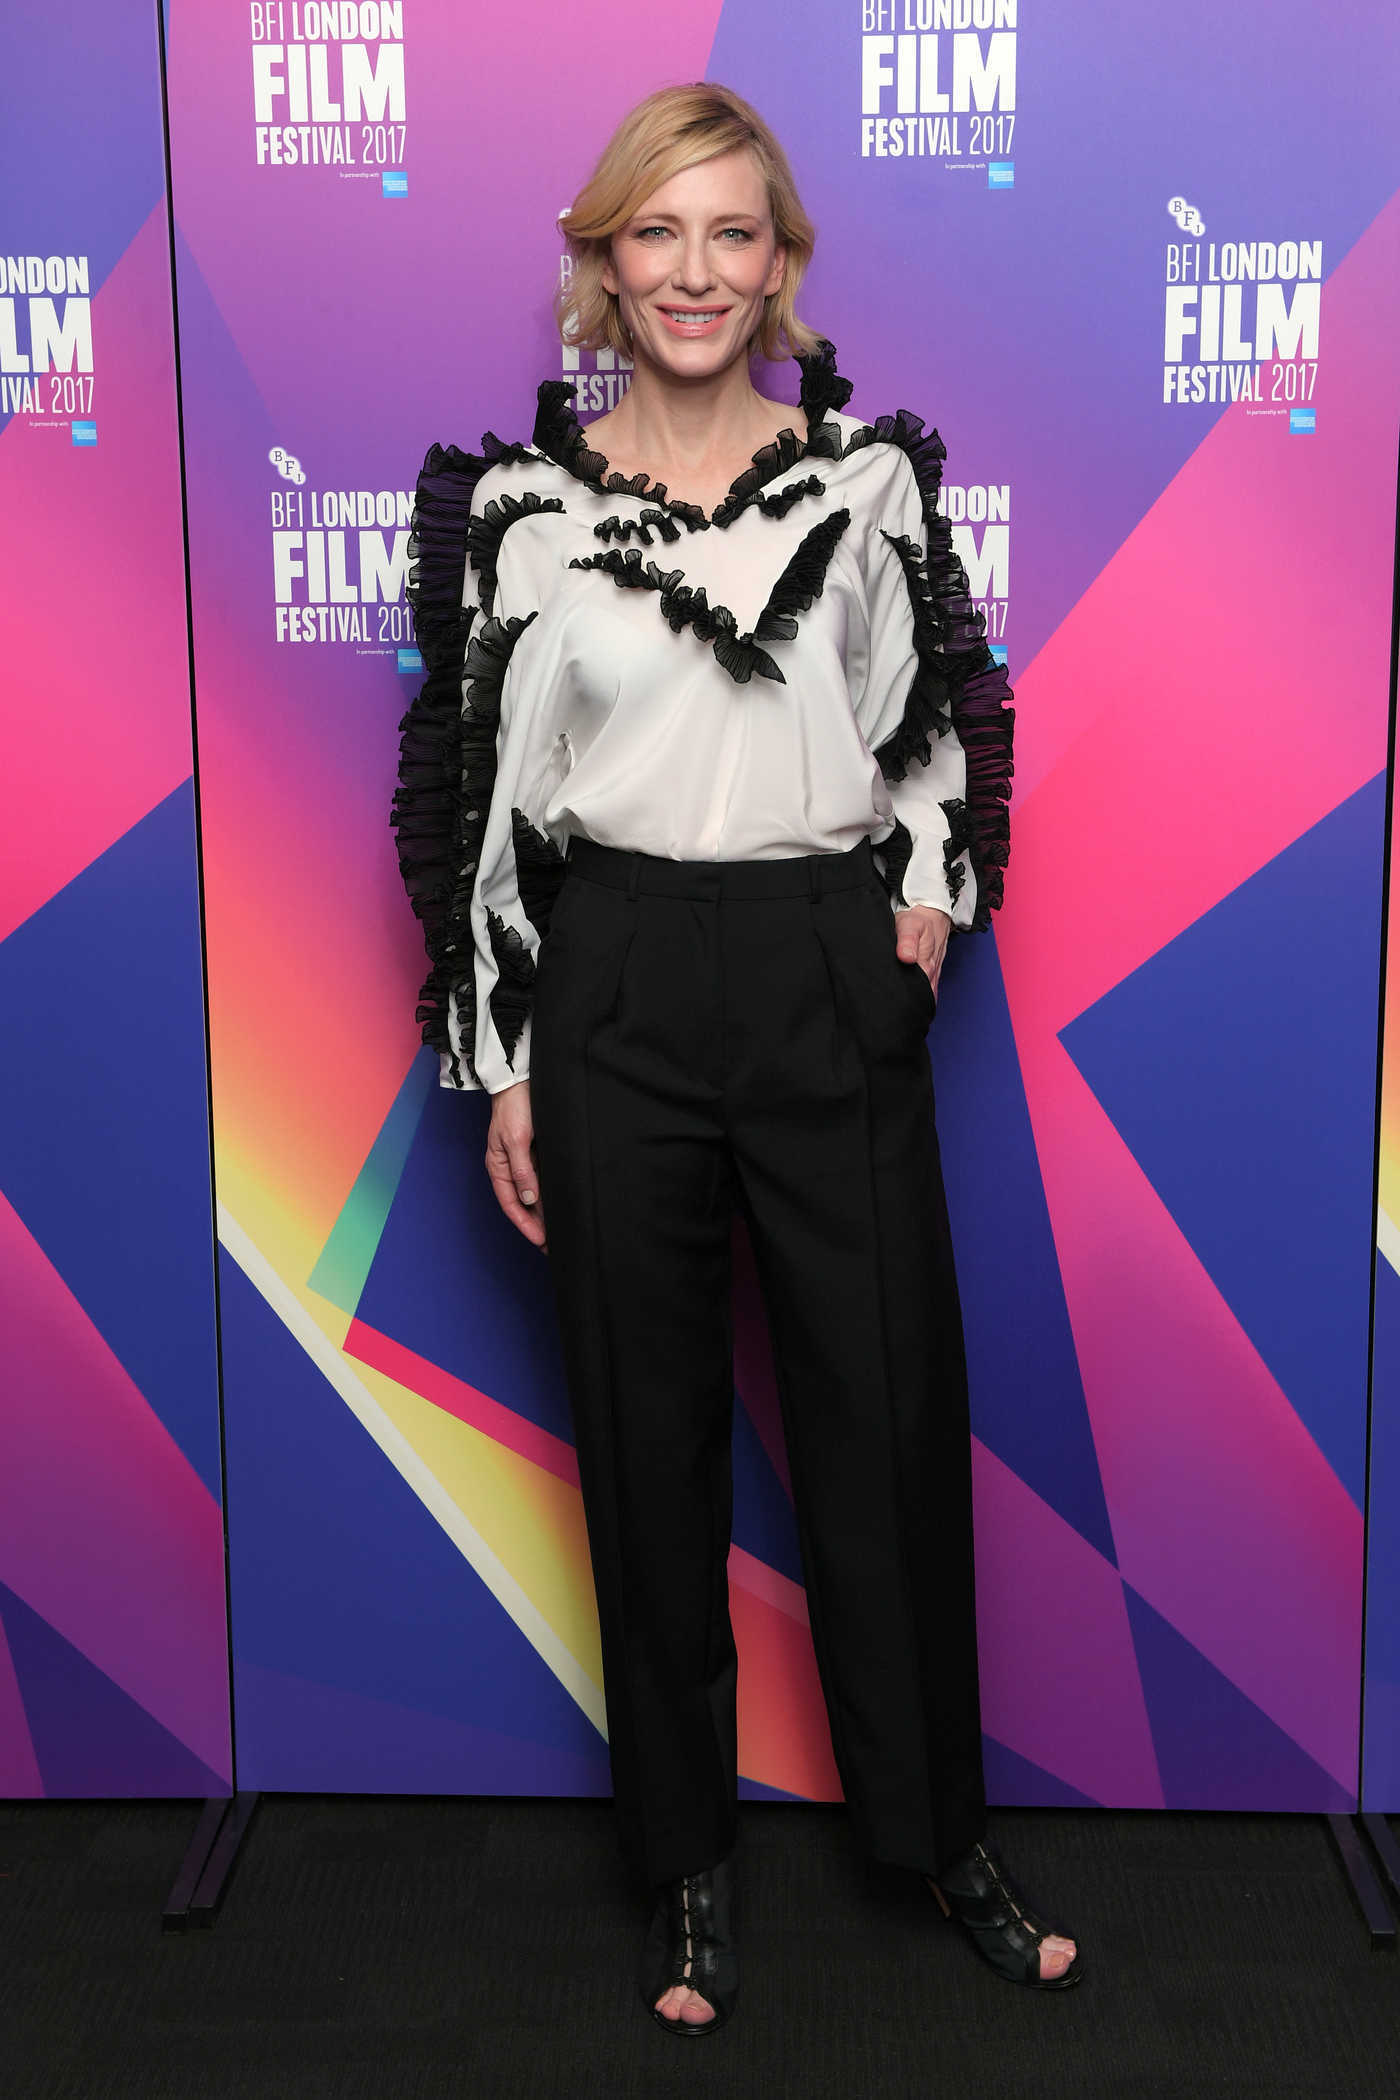 Cate Blanchett at the LFF Connects Photocall During the 61st BFI London Film Festival in London 10/06/2017